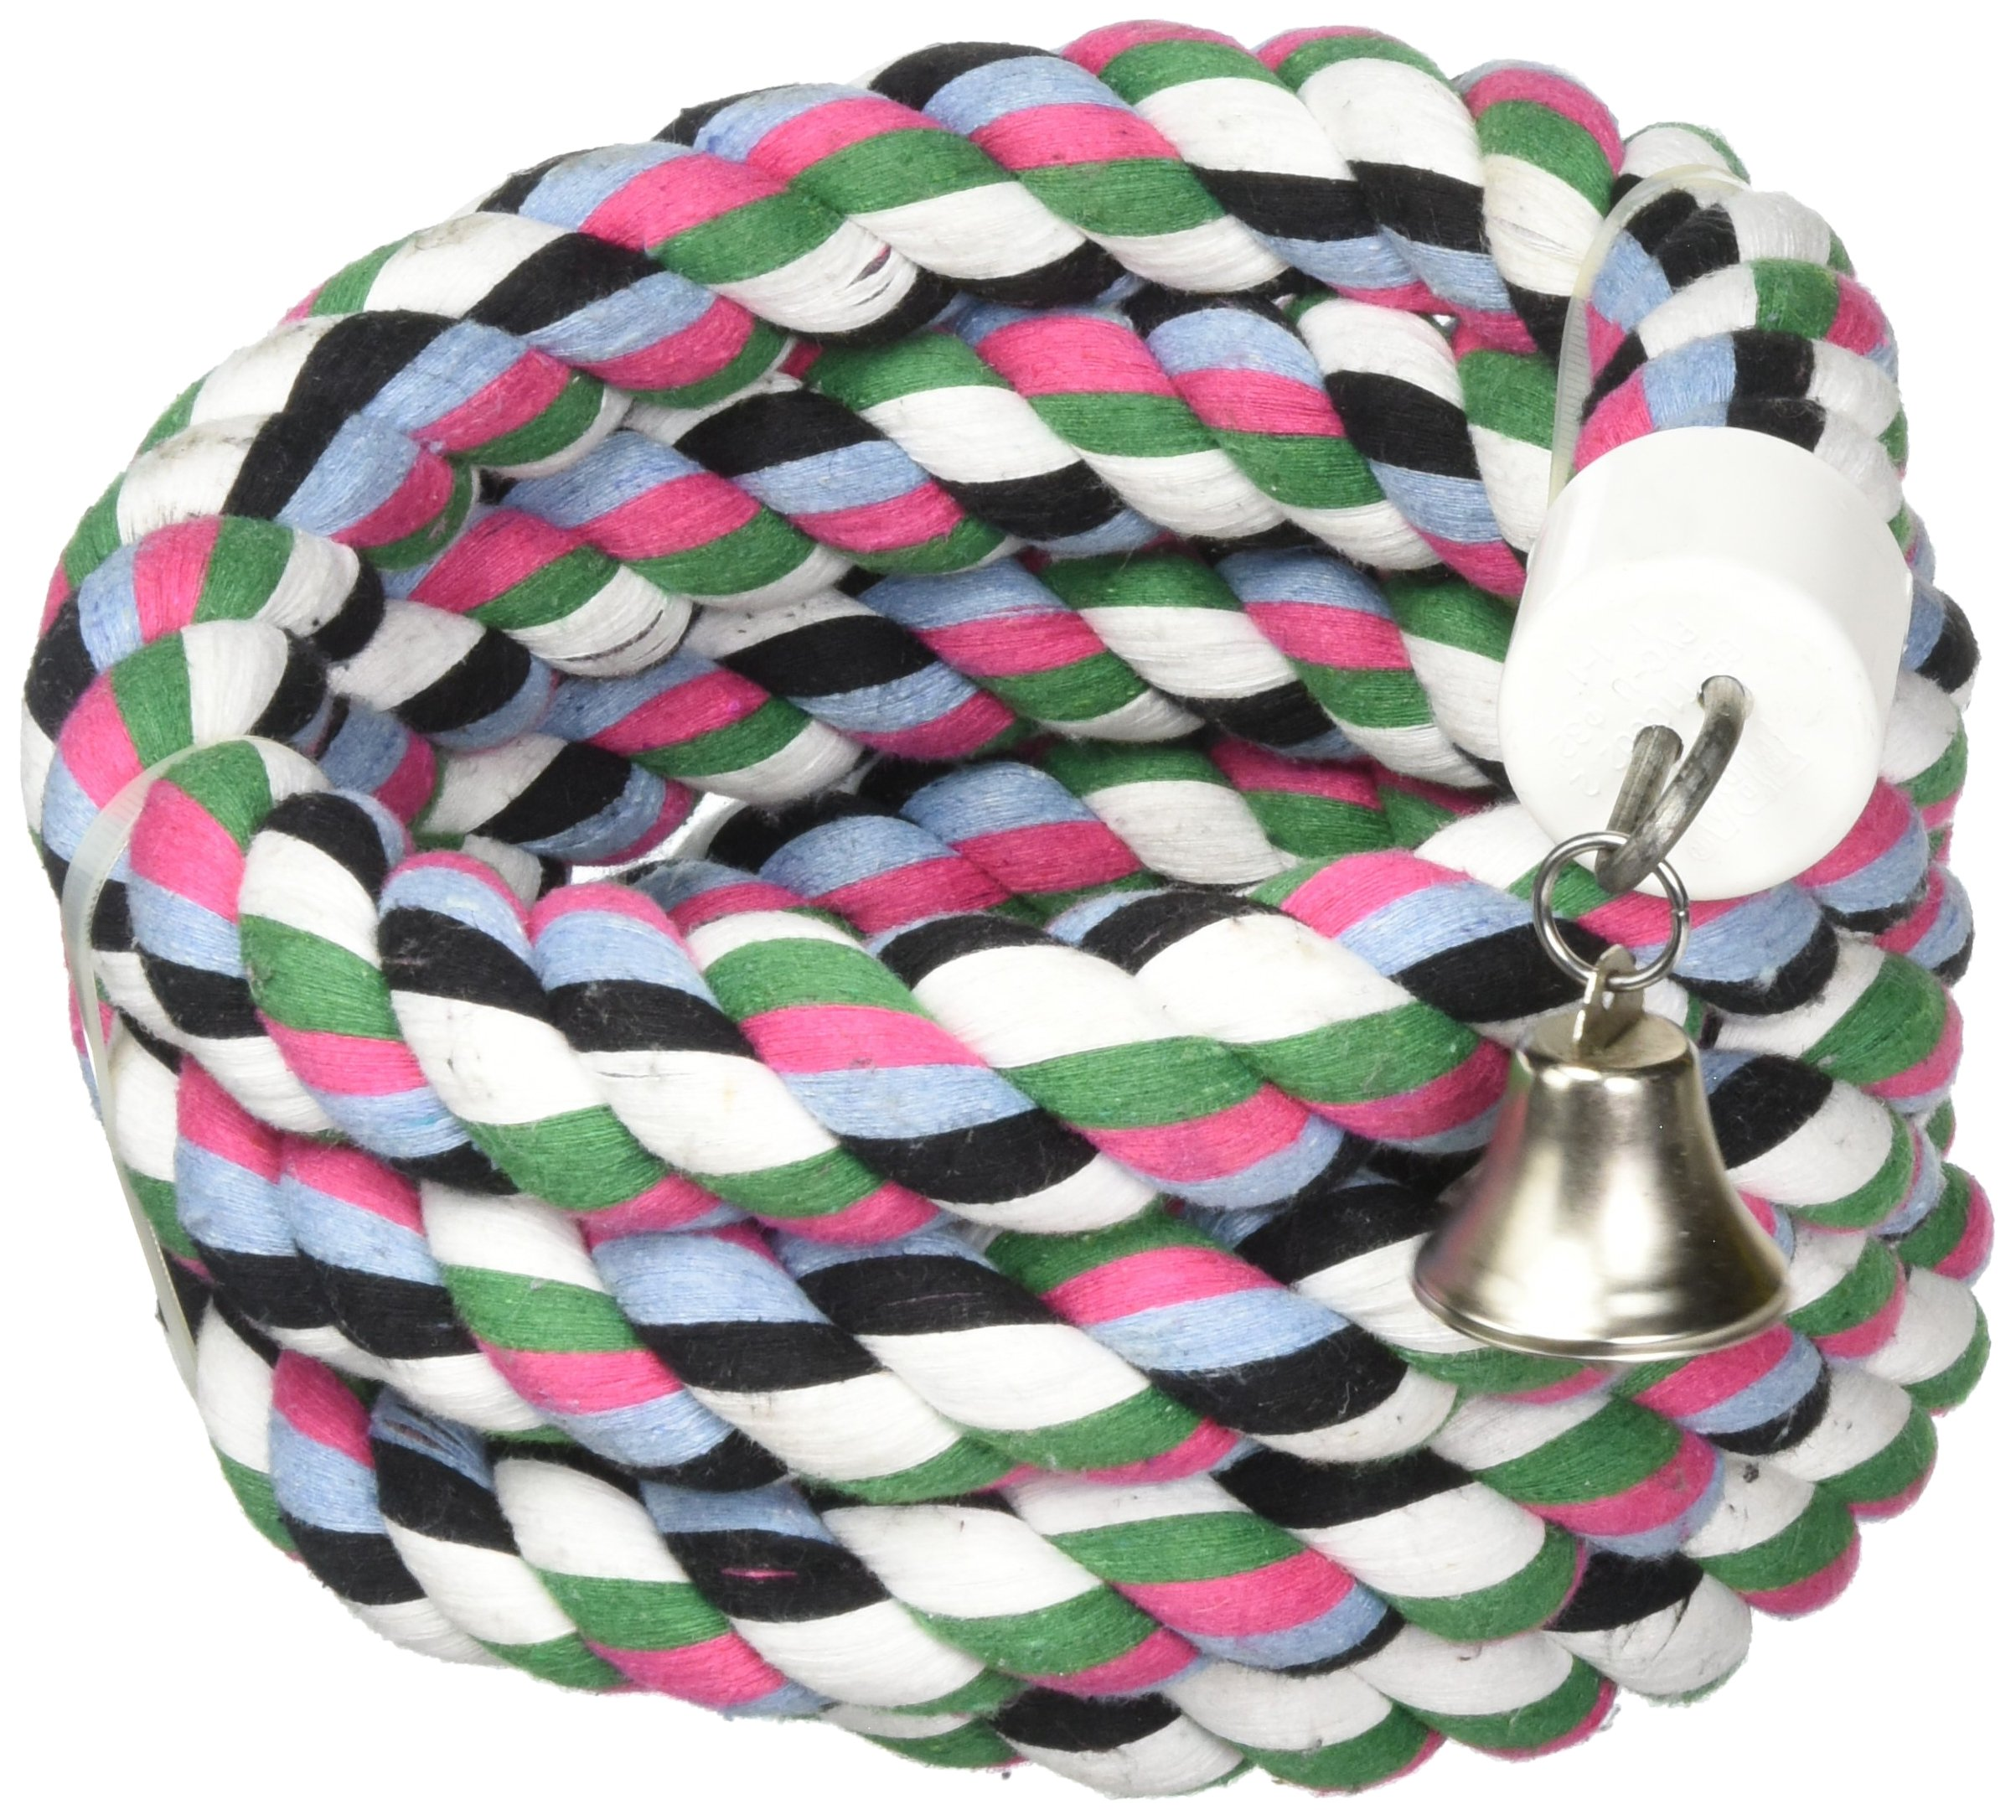 A&E CAGE COMPANY 001348 Happy Beaks Cotton Rope Boing with Bell Bird Toy Multi-Colored, 1.25X97 in by A&E CAGE COMPANY